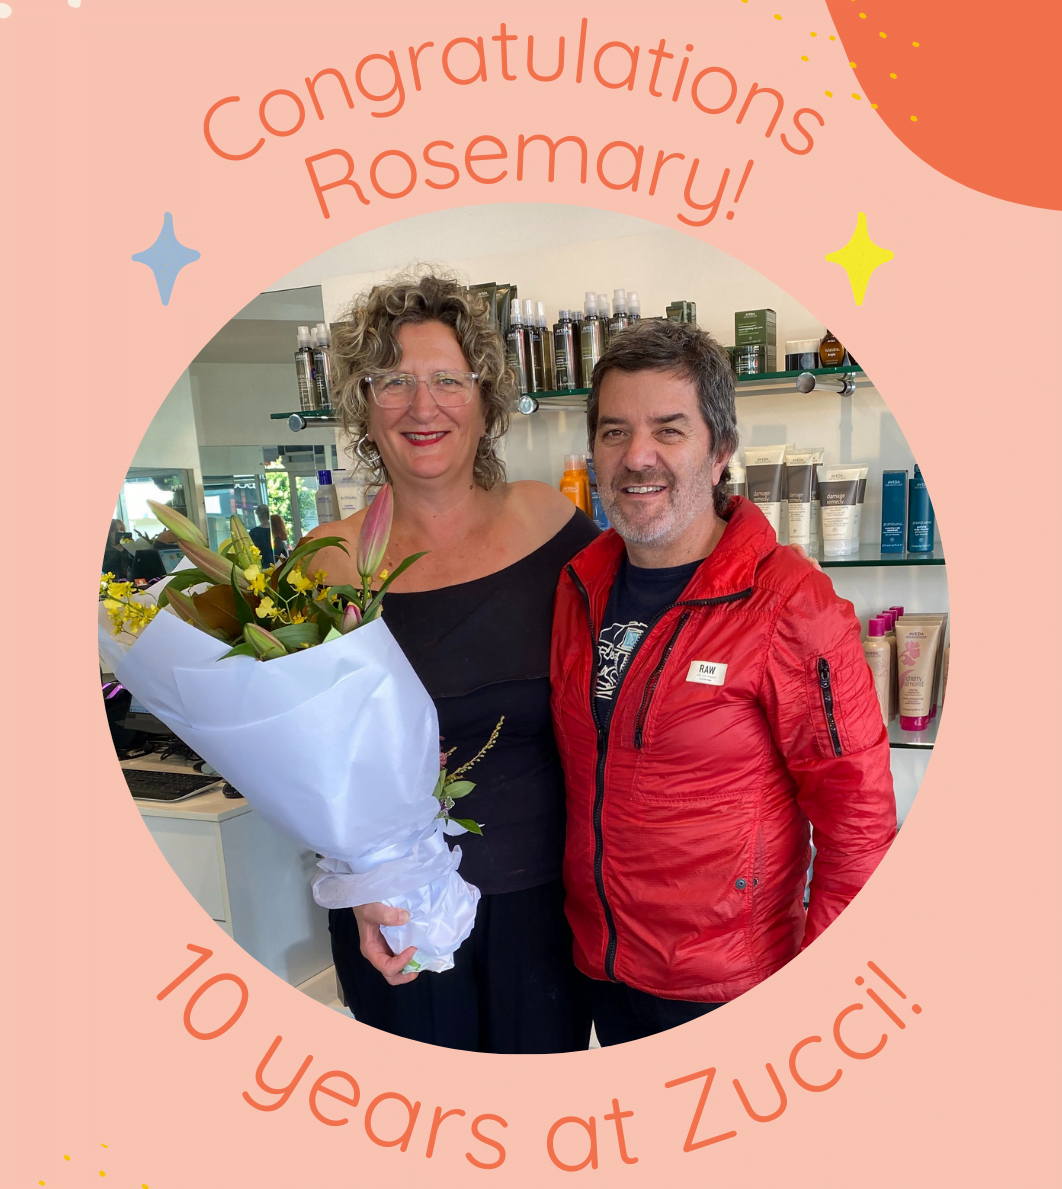 Congrats Rosemary on 10 years at Zucci